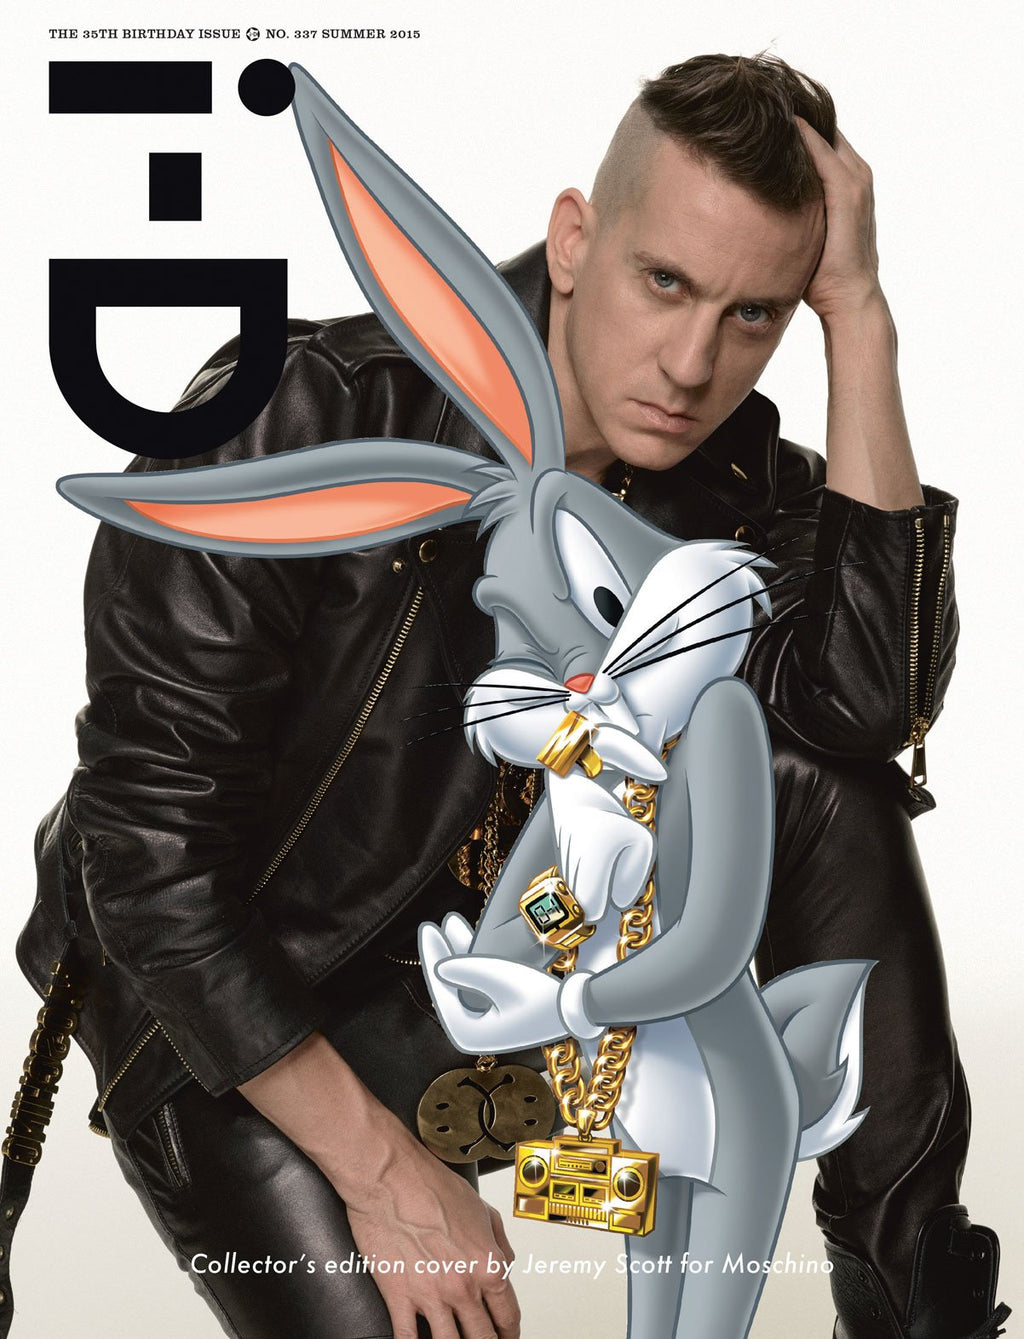 337. JEREMY SCOTT FOR MOSCHINO COLLECTOR'S EDITION COVER WRAP